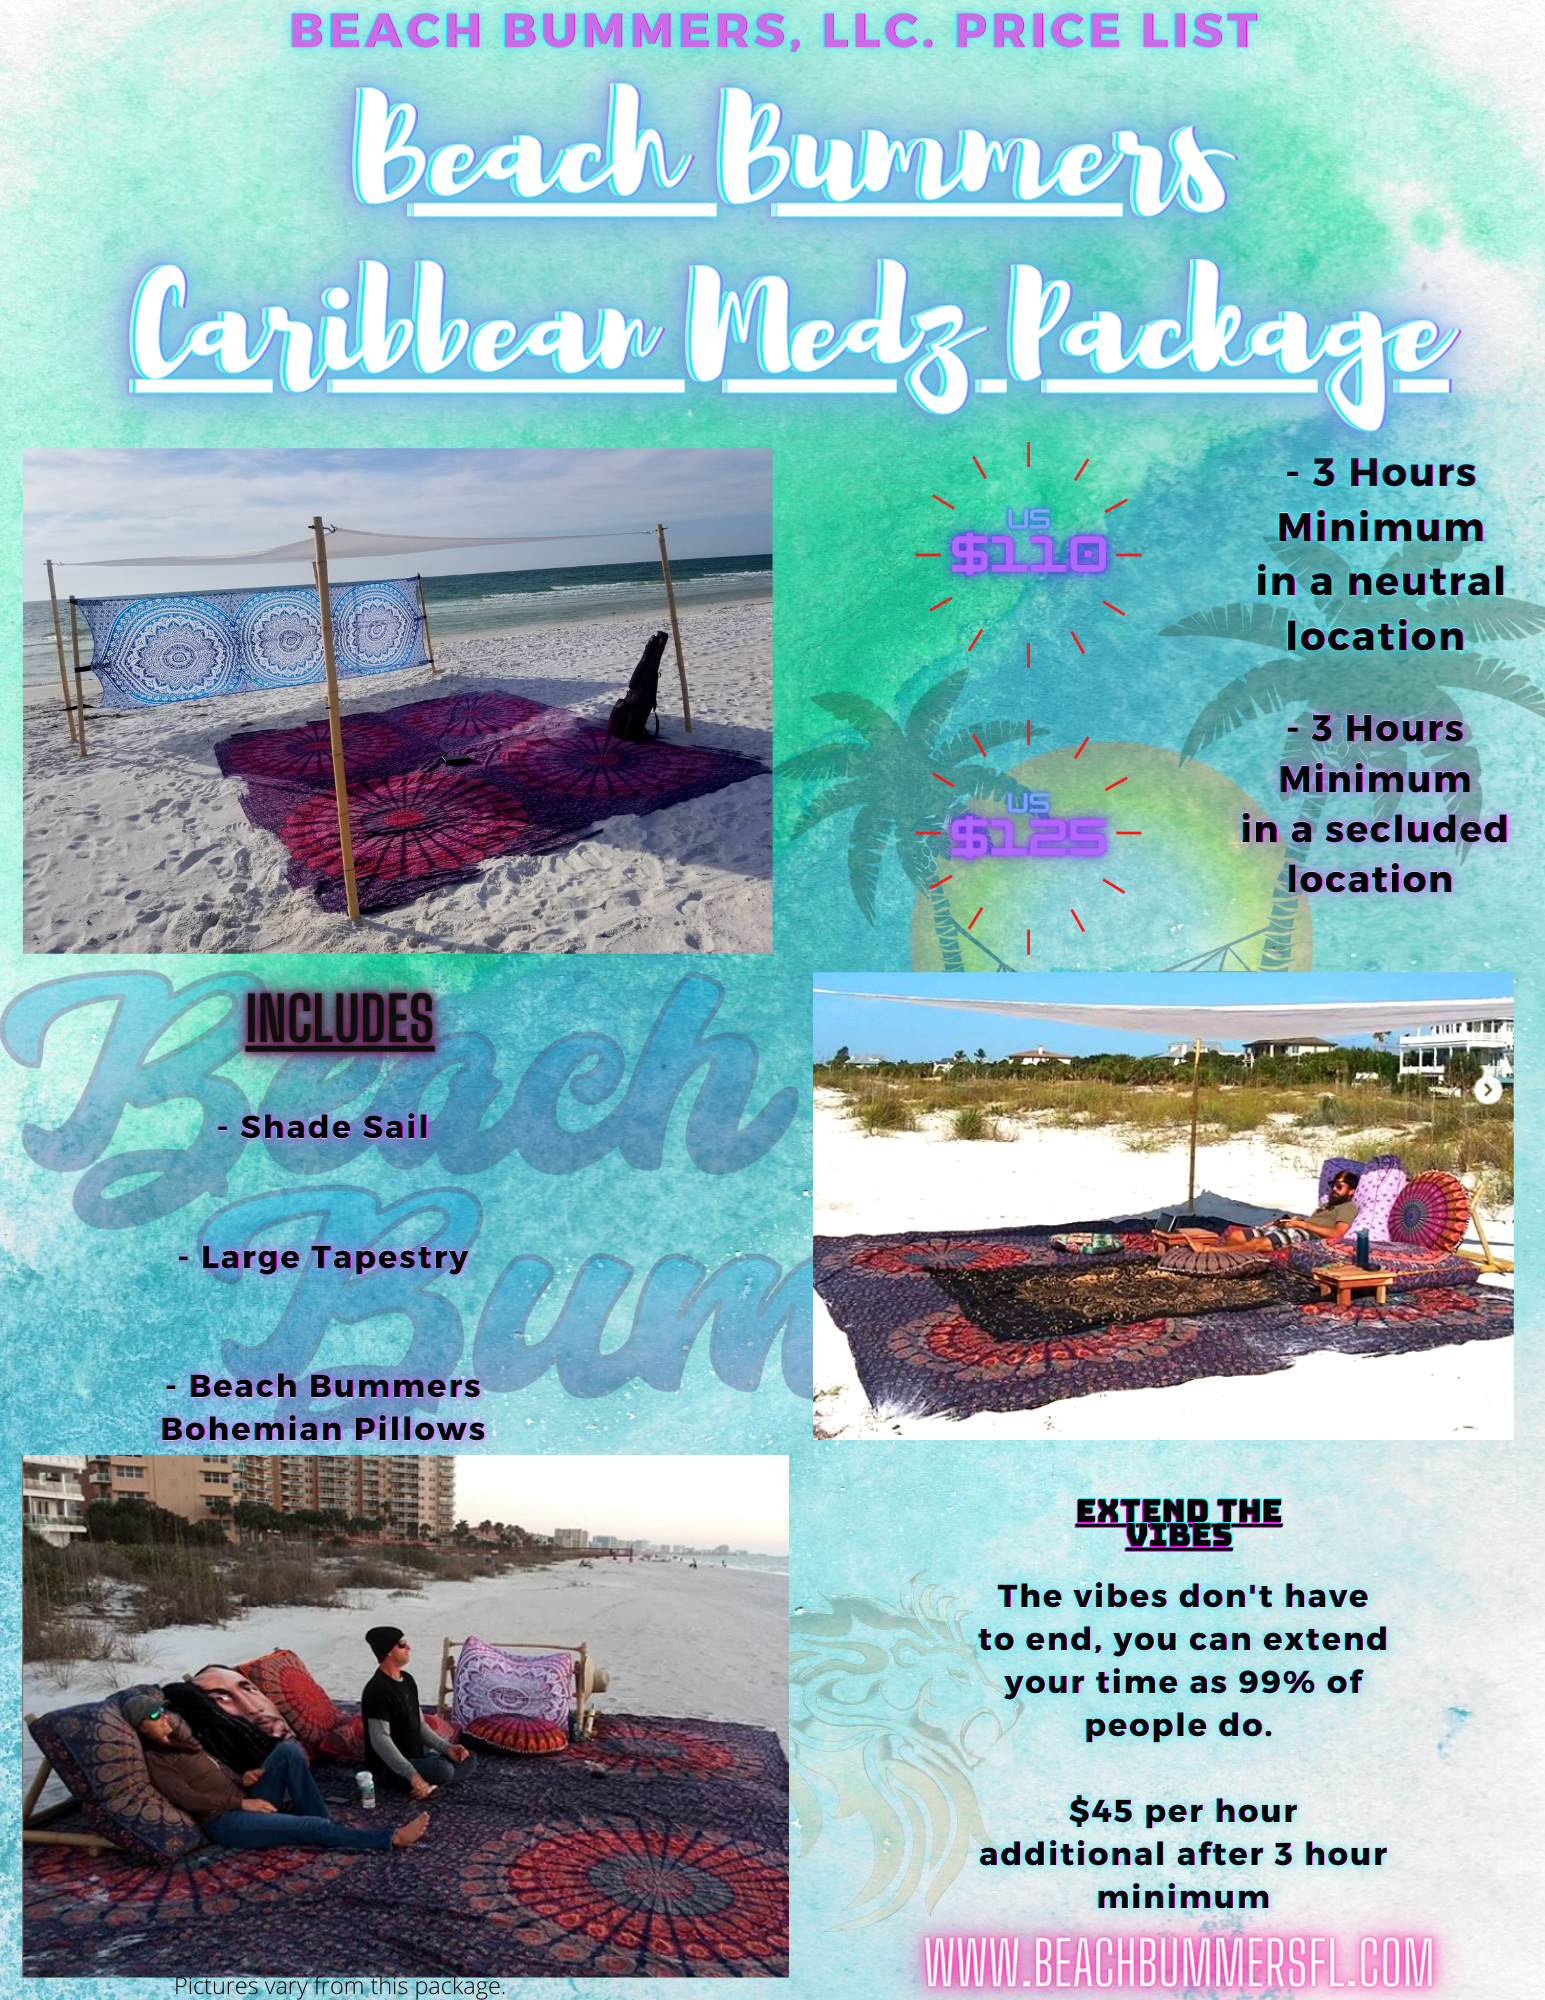 _Beach Bummers Carib Medz Packages